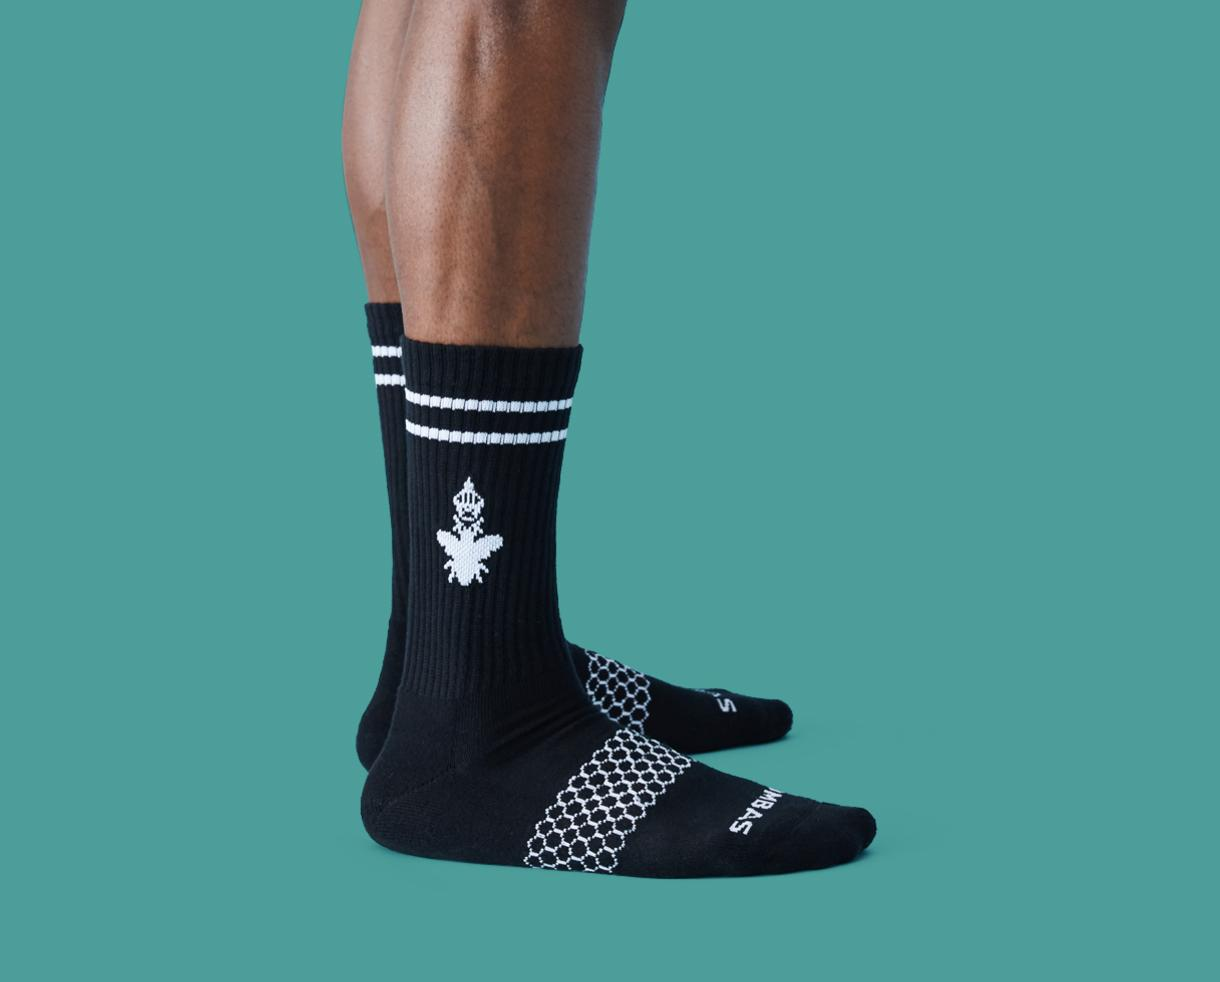 20% off Your Bombas Sock Order